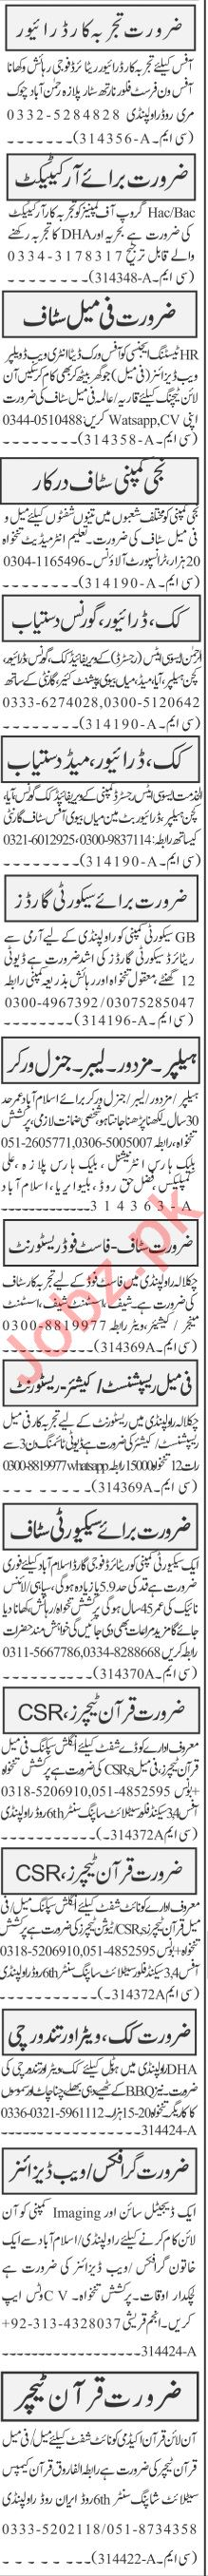 Jang Sunday Classified Ads 12th July 2020 for Office Staff